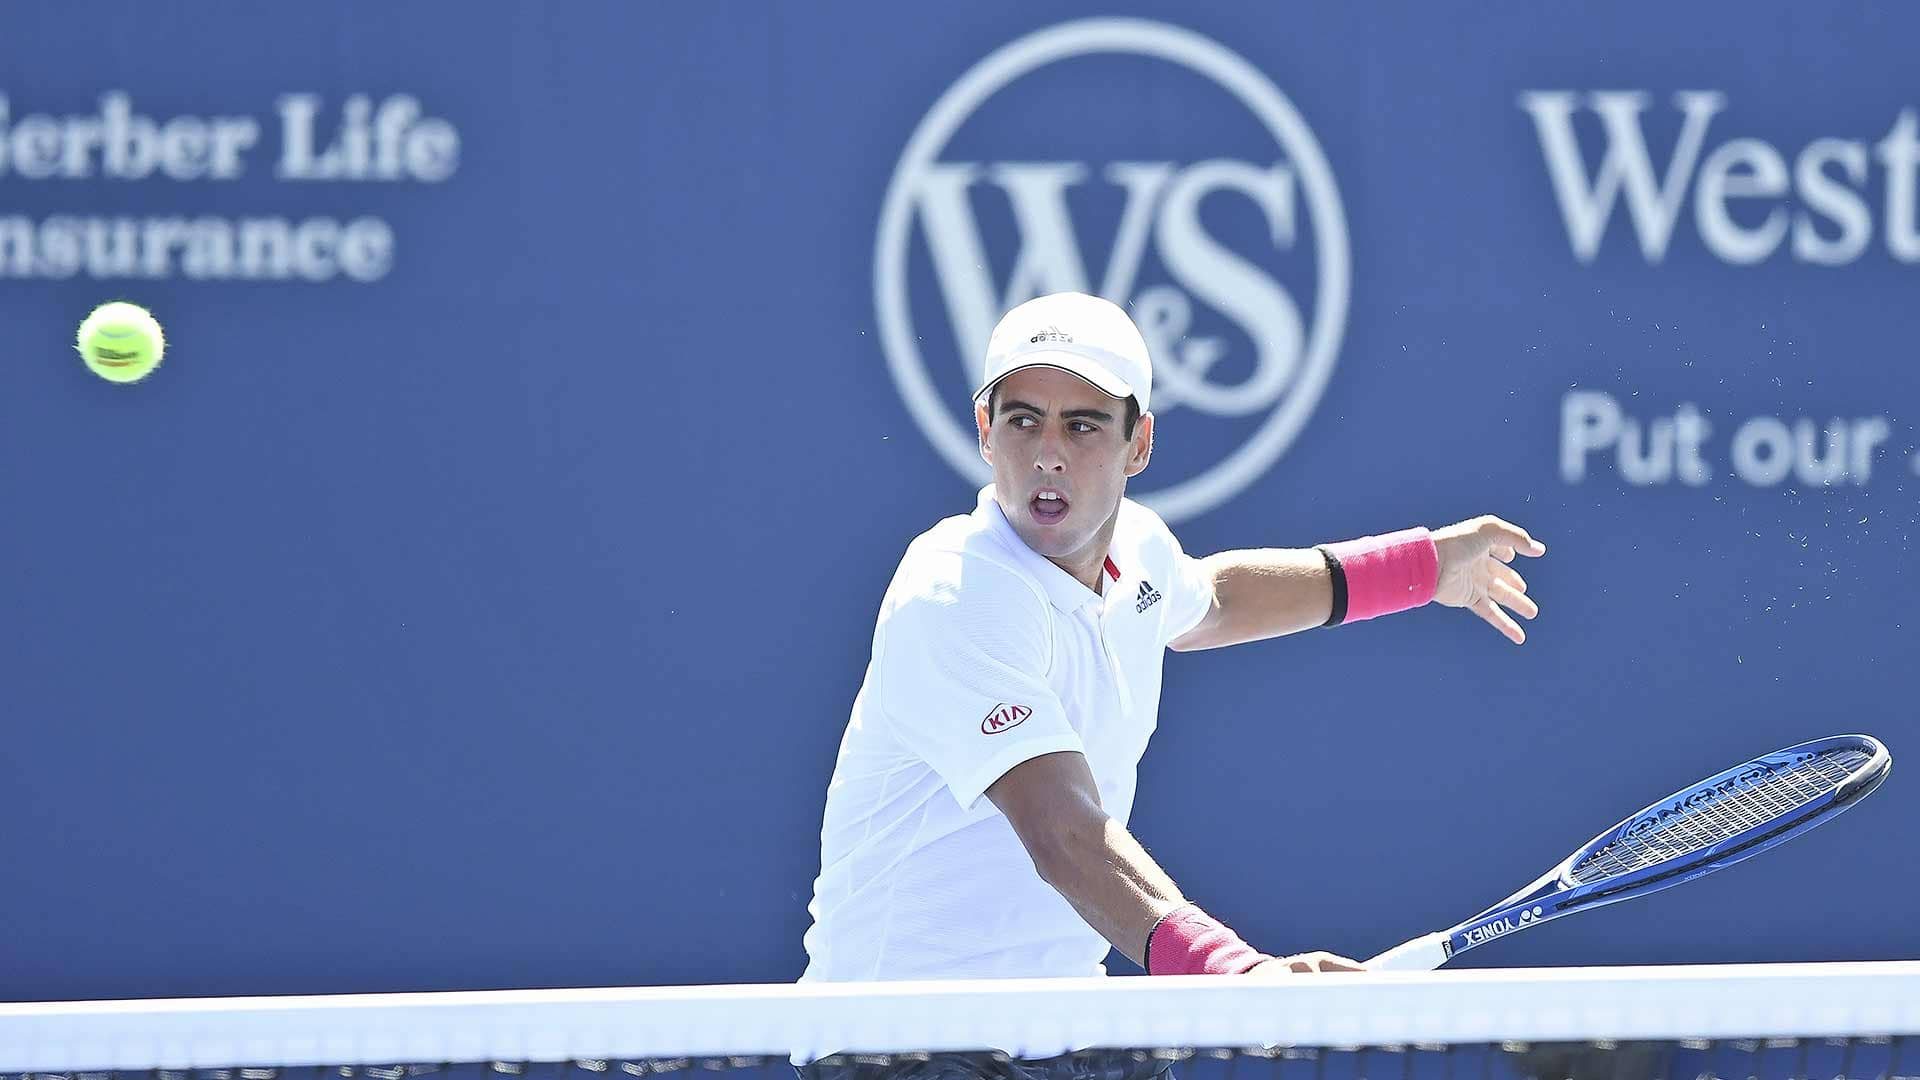 <a href='/en/players/jaume-munar/mu94/overview'>Jaume Munar</a> beats <a href='/en/players/federico-delbonis/d874/overview'>Federico Delbonis</a> in straight sets at the Western & Southern Open.